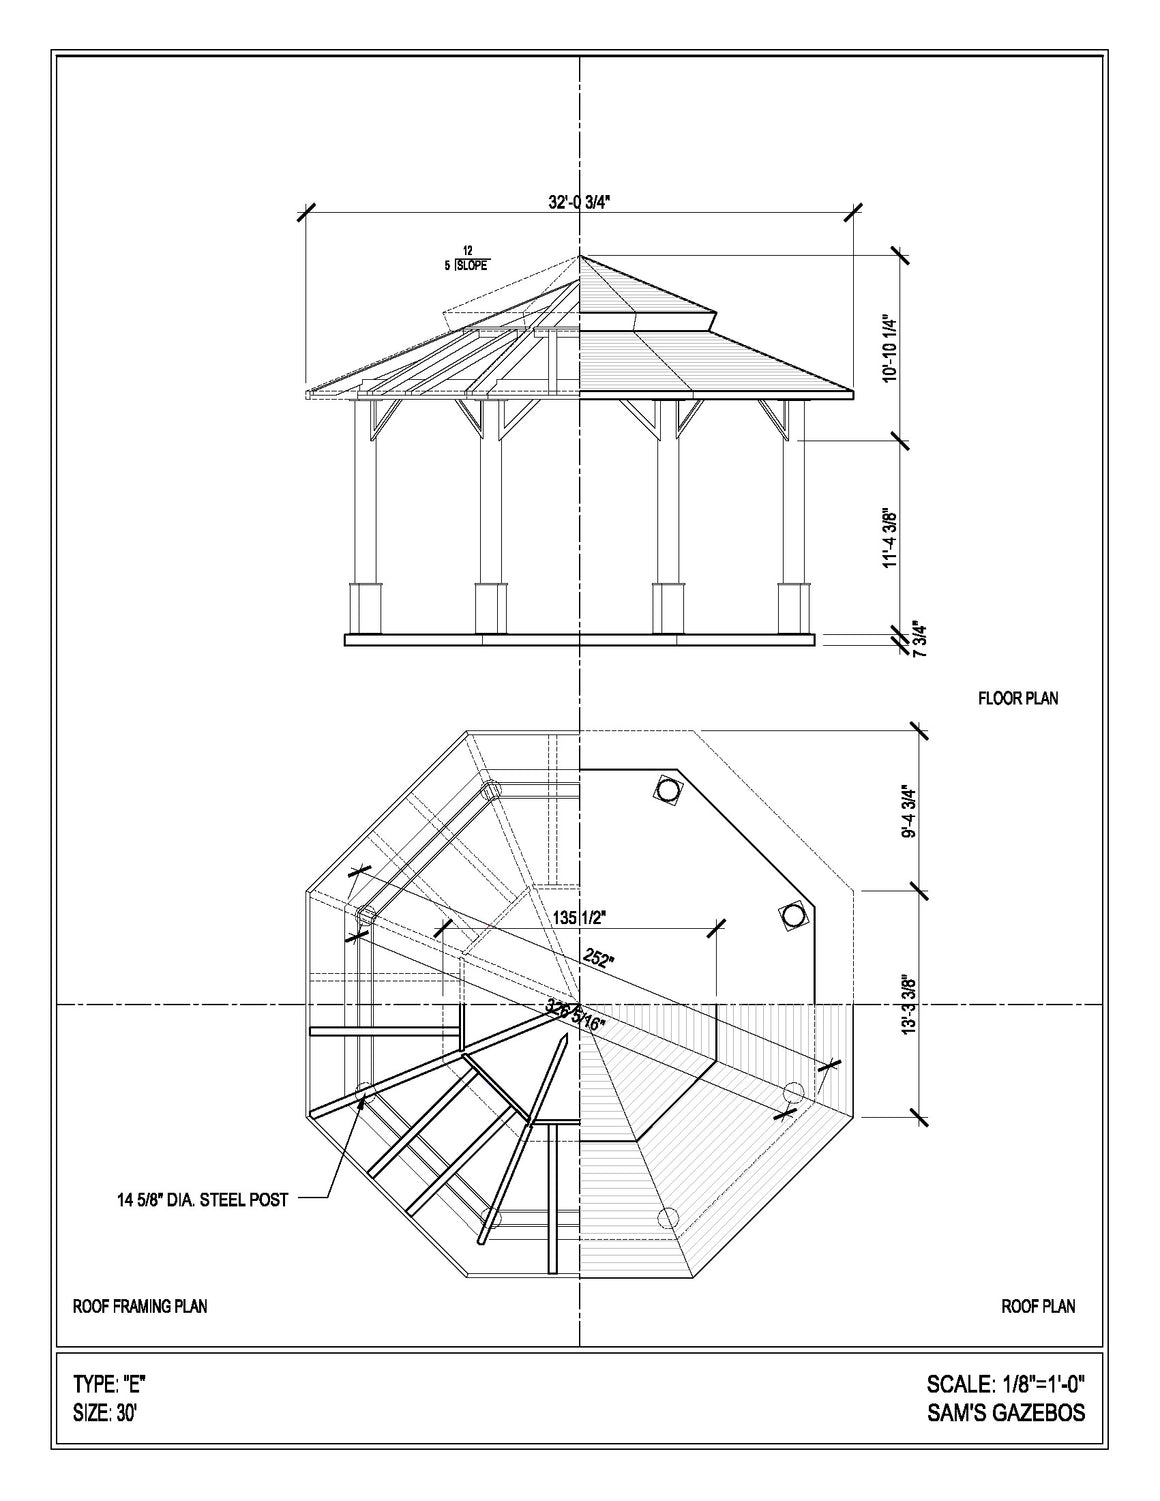 Octagon Gazebo with Copper Two-Tiered Pagoda Roof, Copper Cupola, Plain Corbels, Classic Steel Columns, 5 Railings, 30-foot